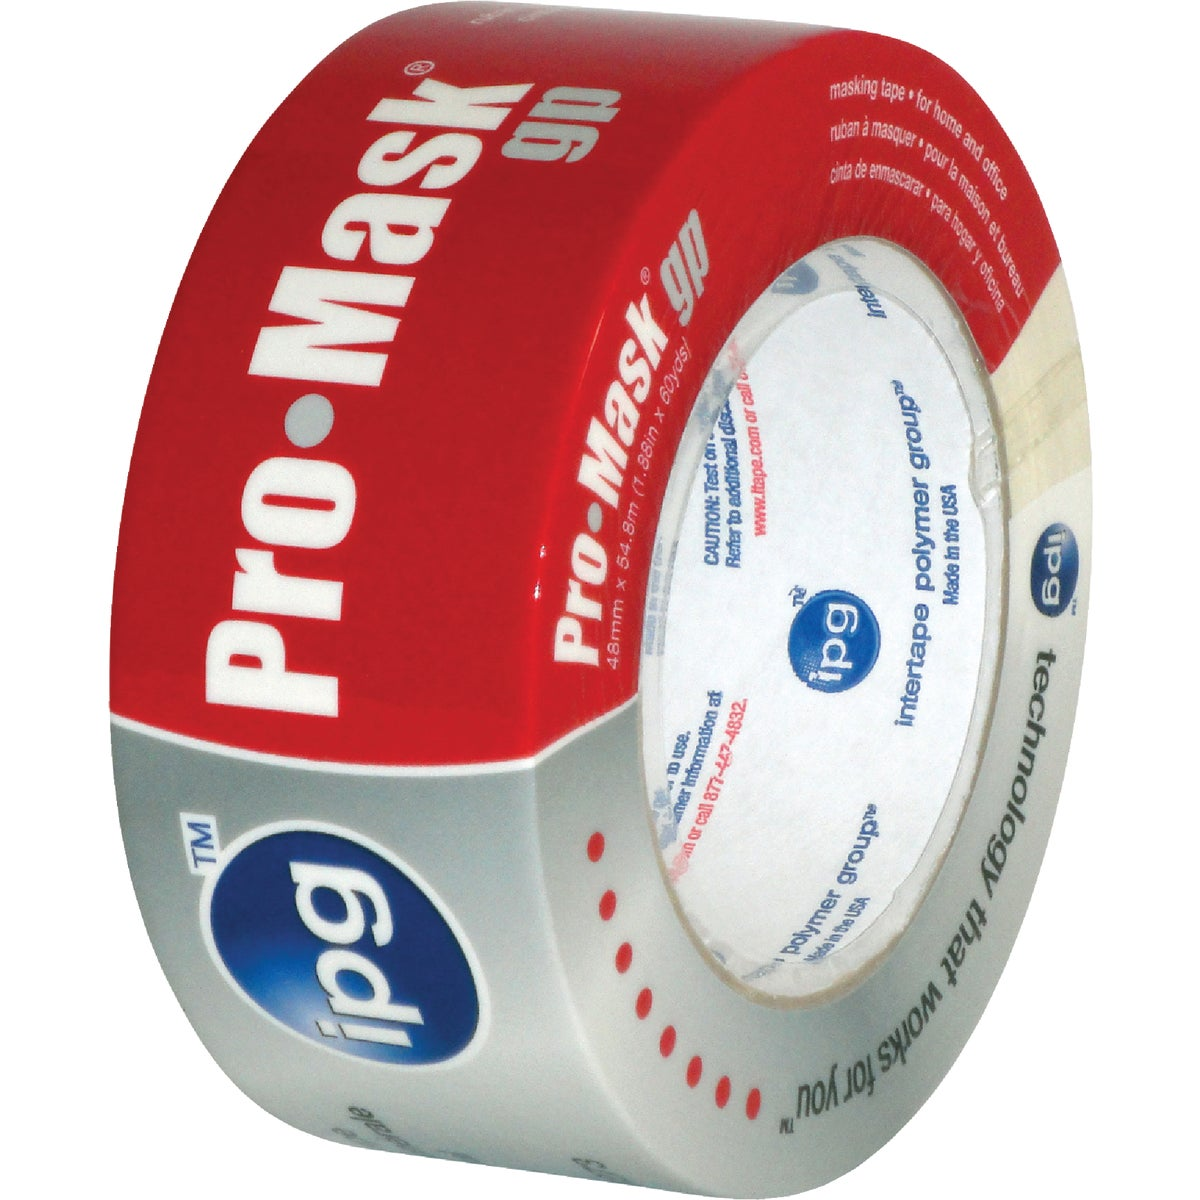 "2"" G/P MASKING TAPE - 5103 by Intertape Polymer"